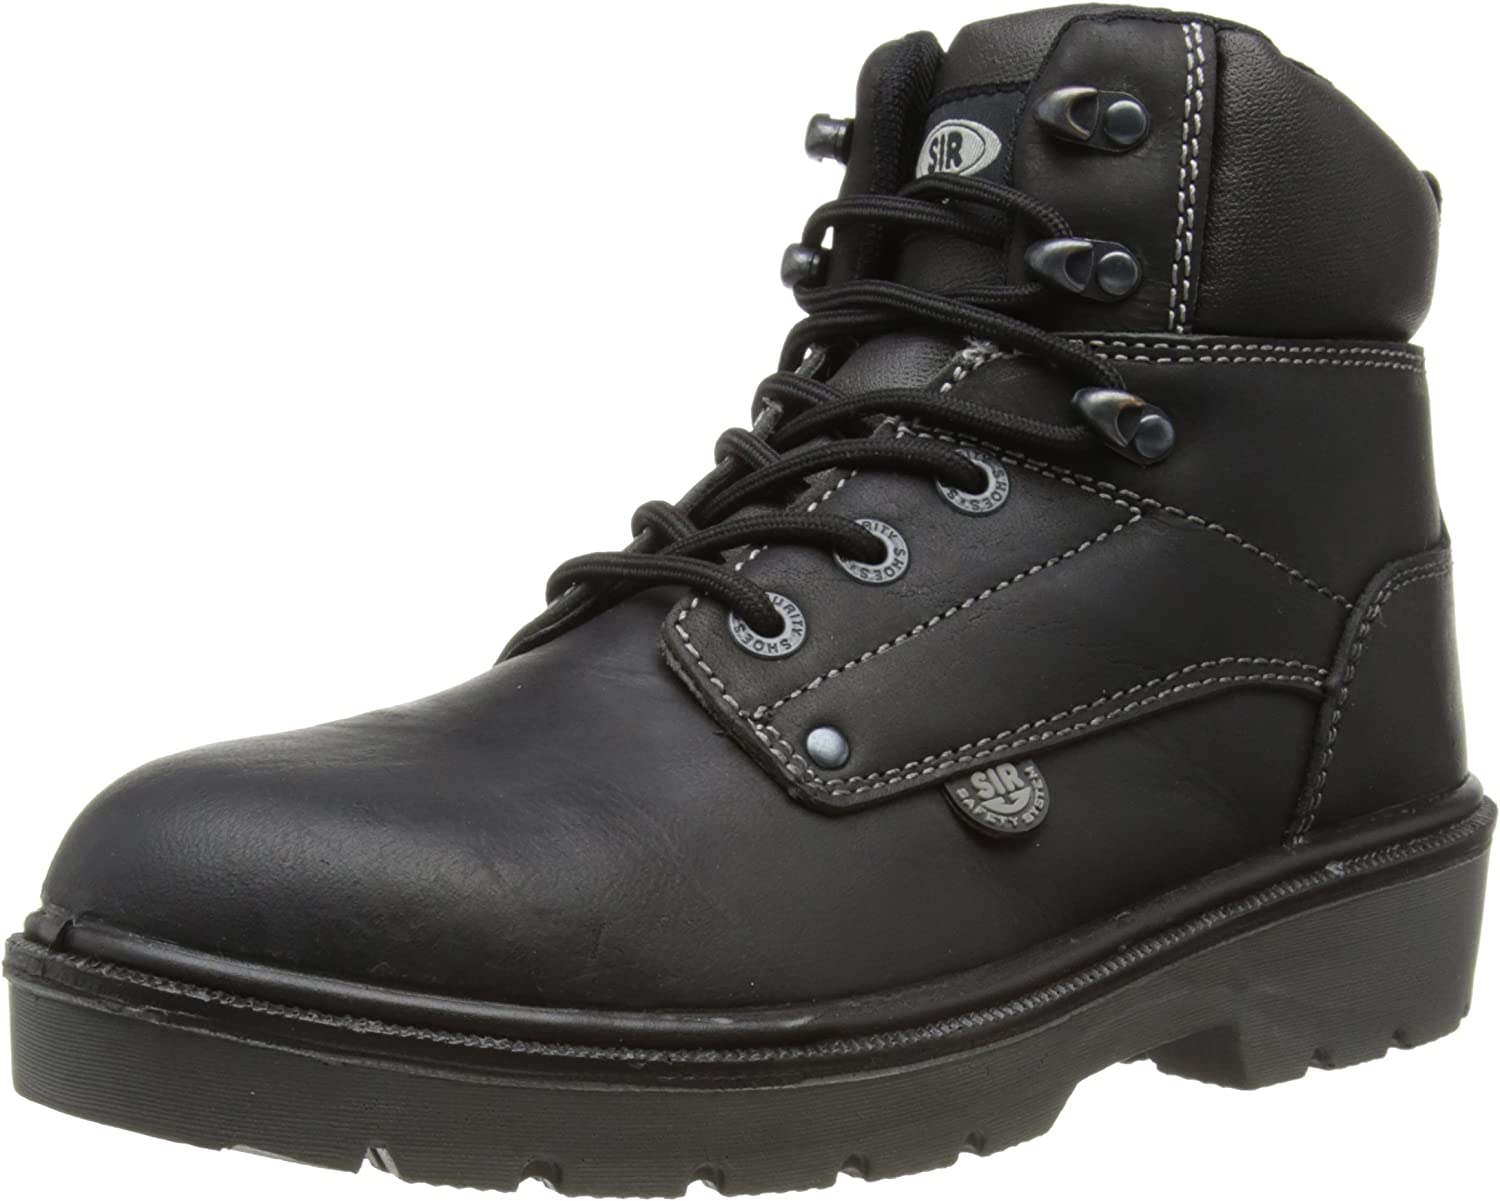 SIR Safety Unisex-Adult Road High Safety Boots 26030 Black 6 UK, 40 EU